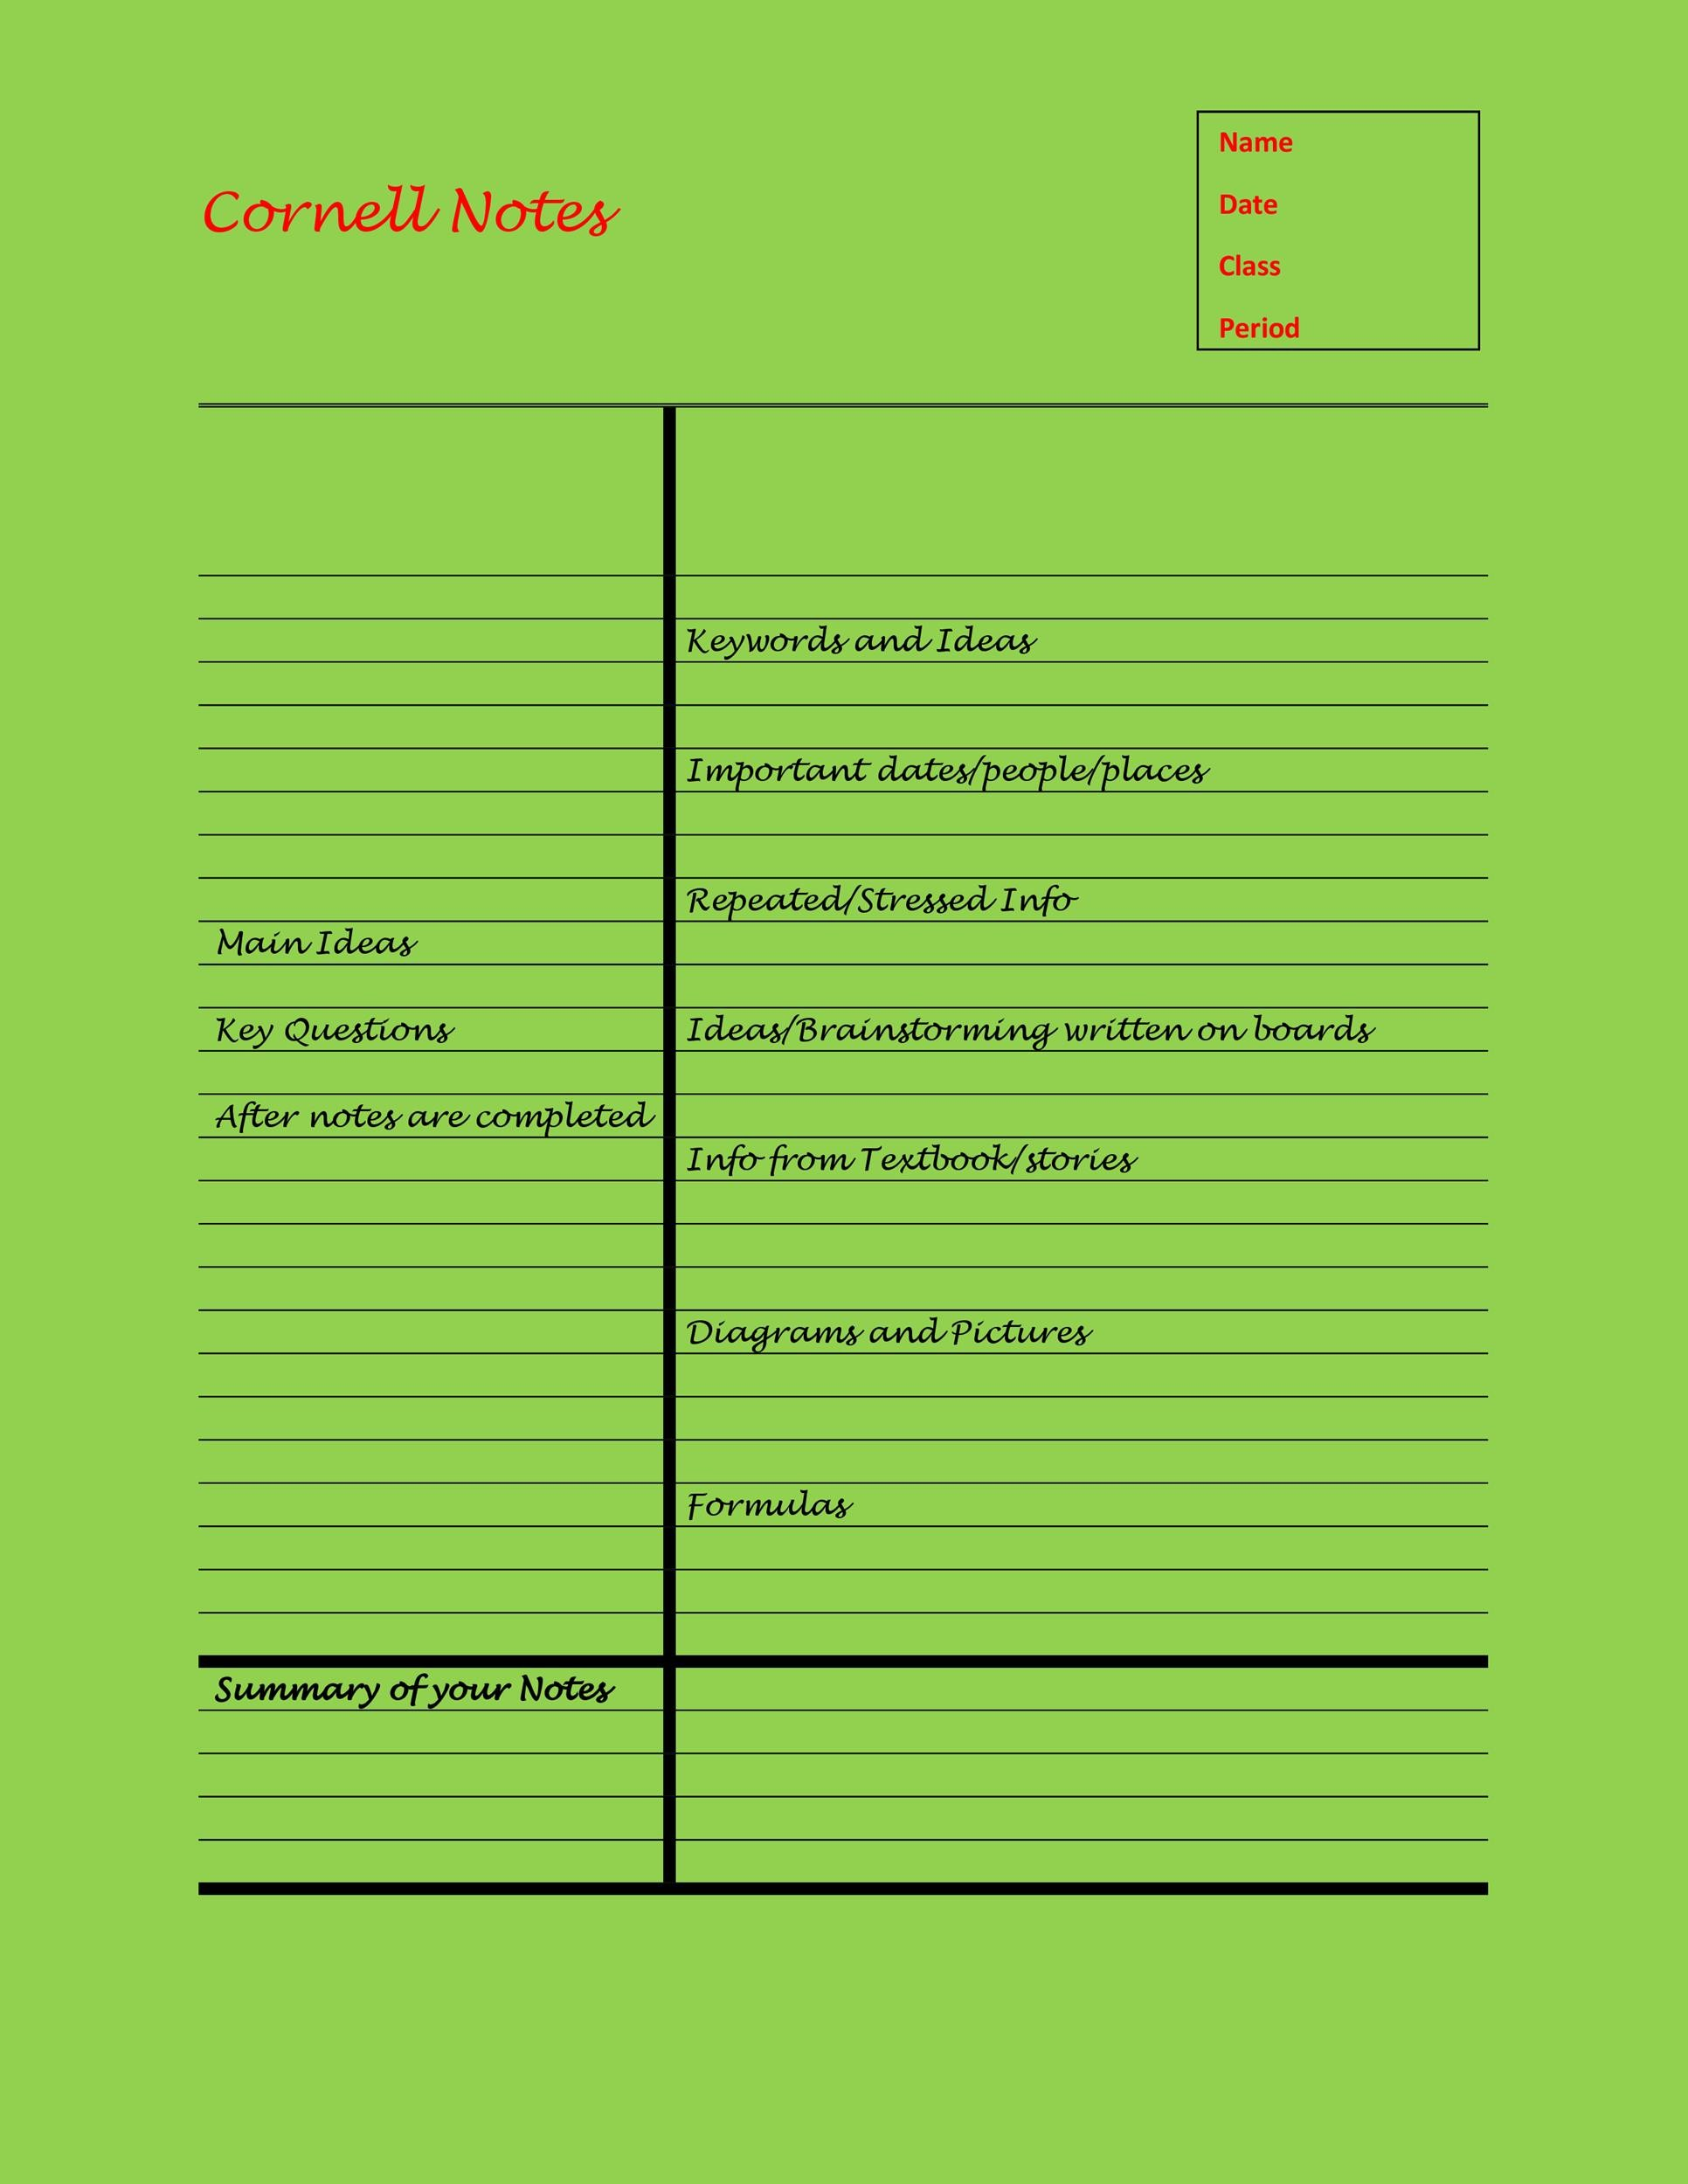 Cornell Notes Template 24